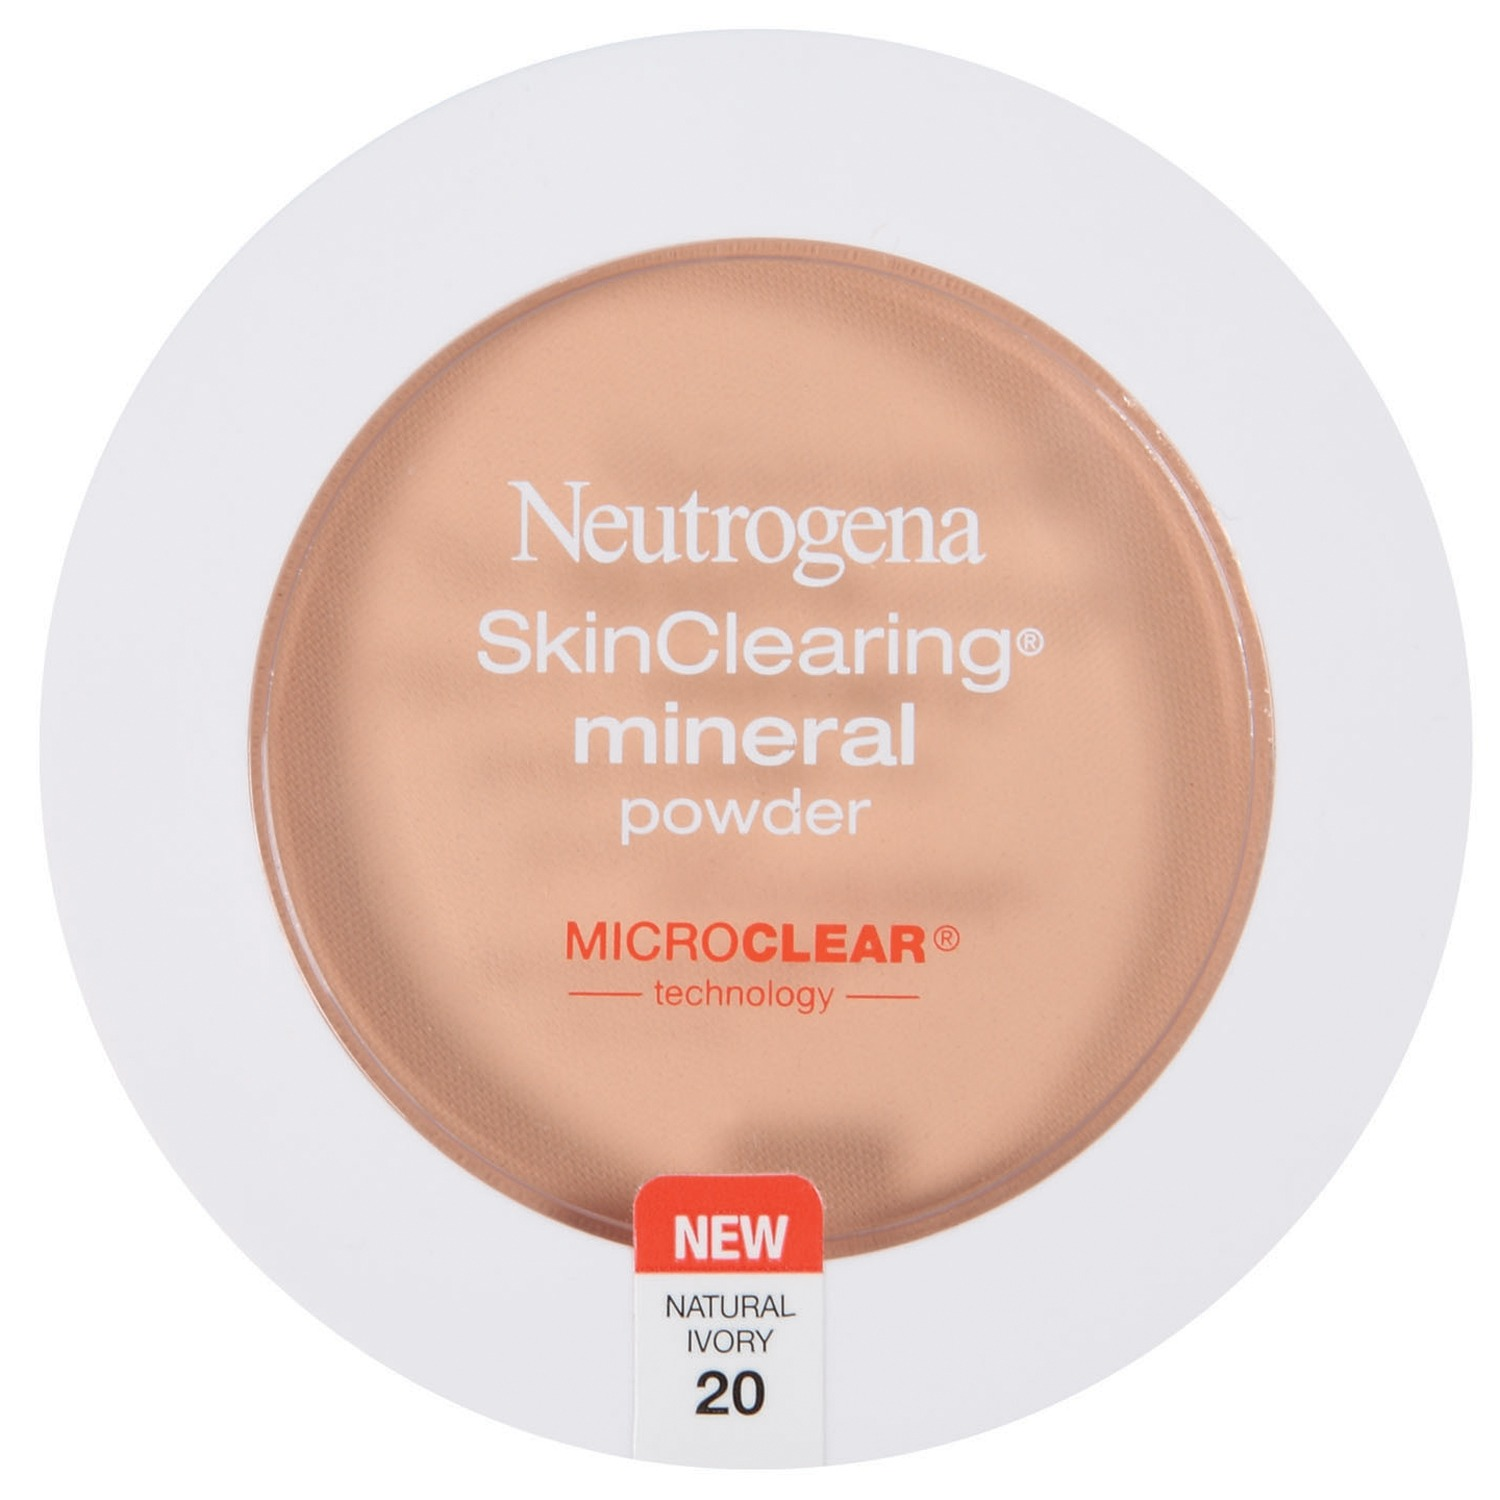 Neutrogena Skinclearing Mineral Powder, Natural Ivory 20, .38 Oz